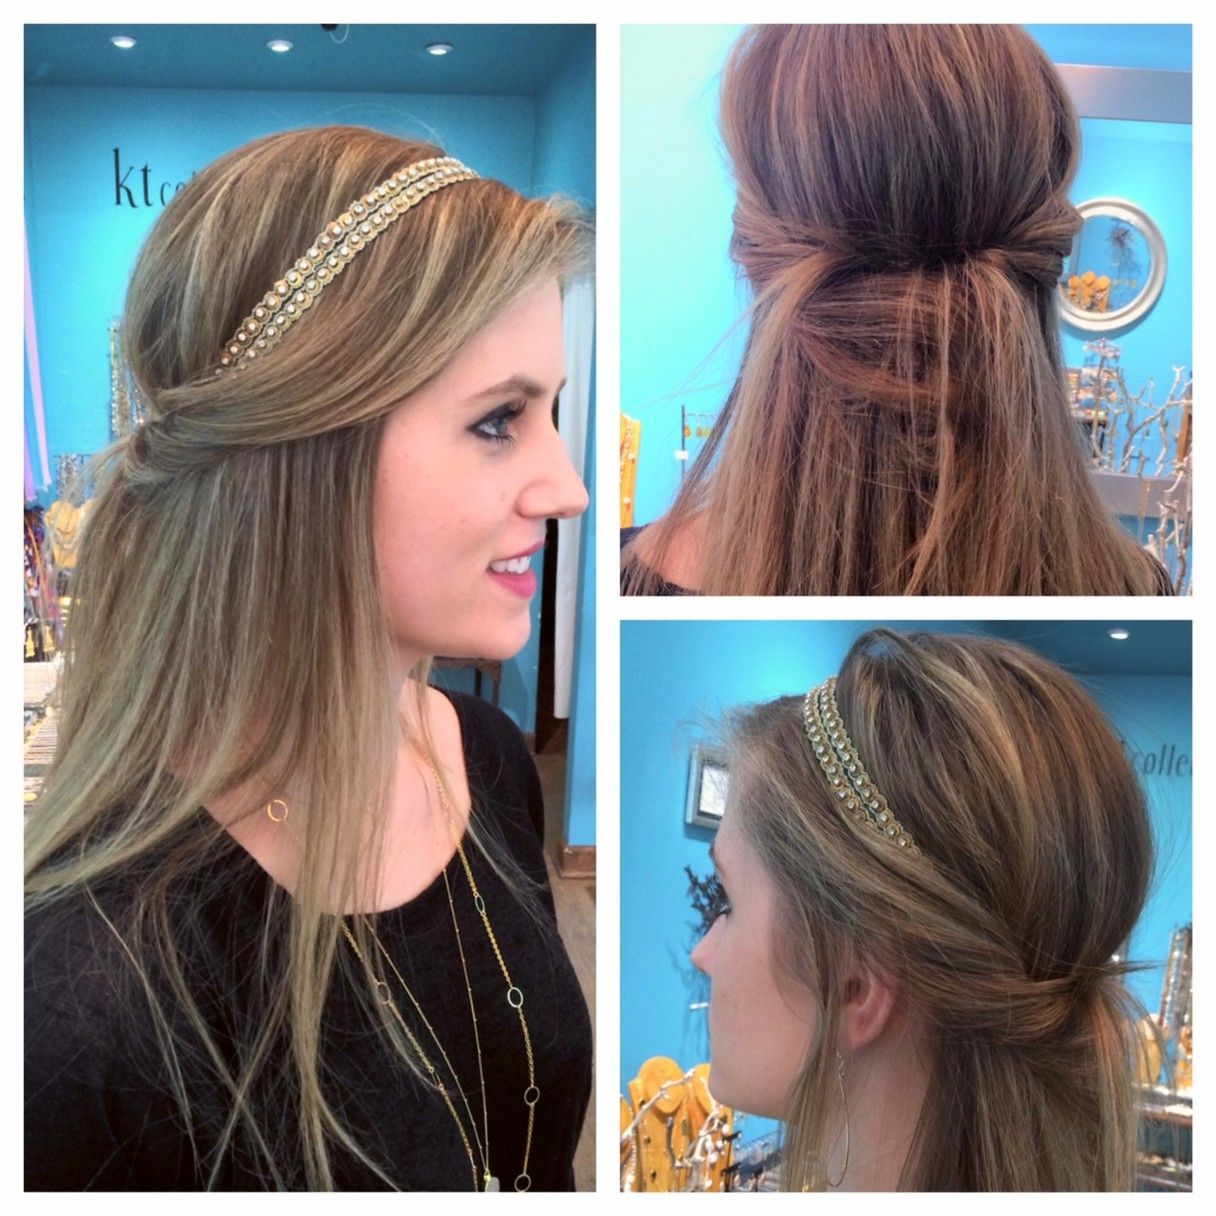 Down Hairstyles With Headbands Dpwflrbk7 Jpg 1216 1216 Headband Hairstyles Down Hairstyles Headband Curls